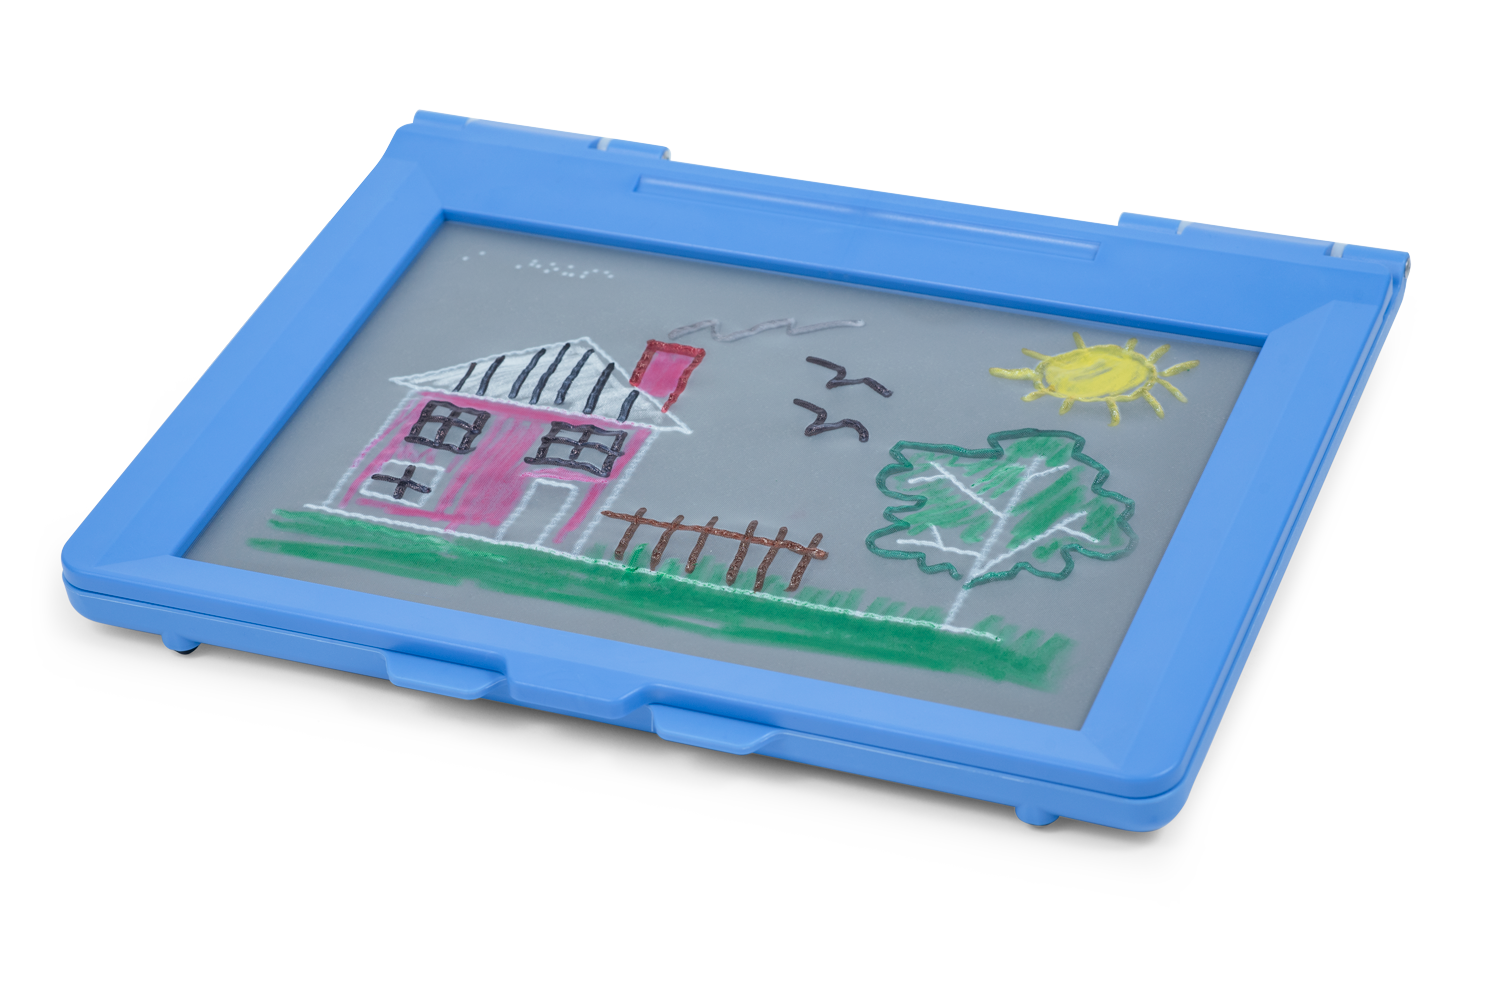 Picture of a completed Interactive Tactile Drawing of a House, Tree and Sun